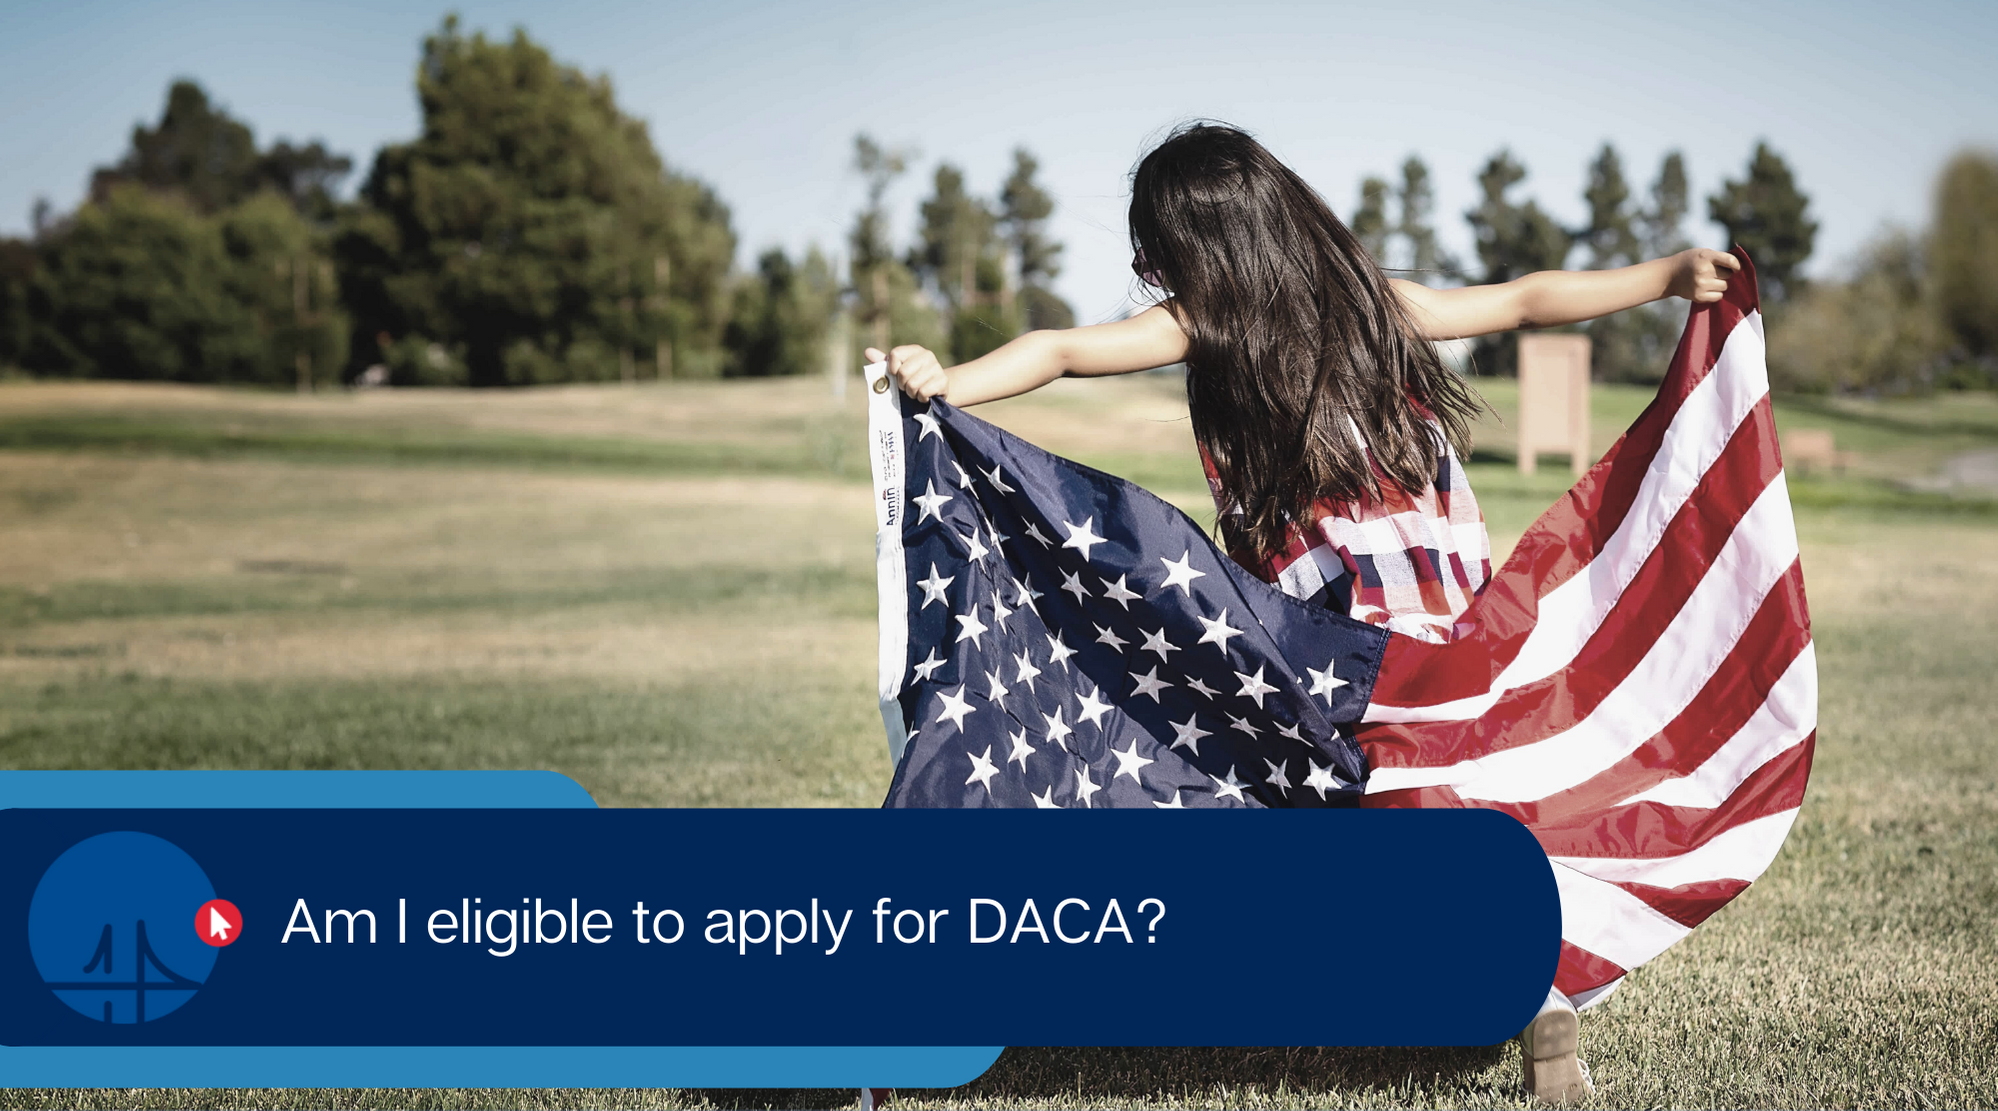 What do you need to request Initial DACA?